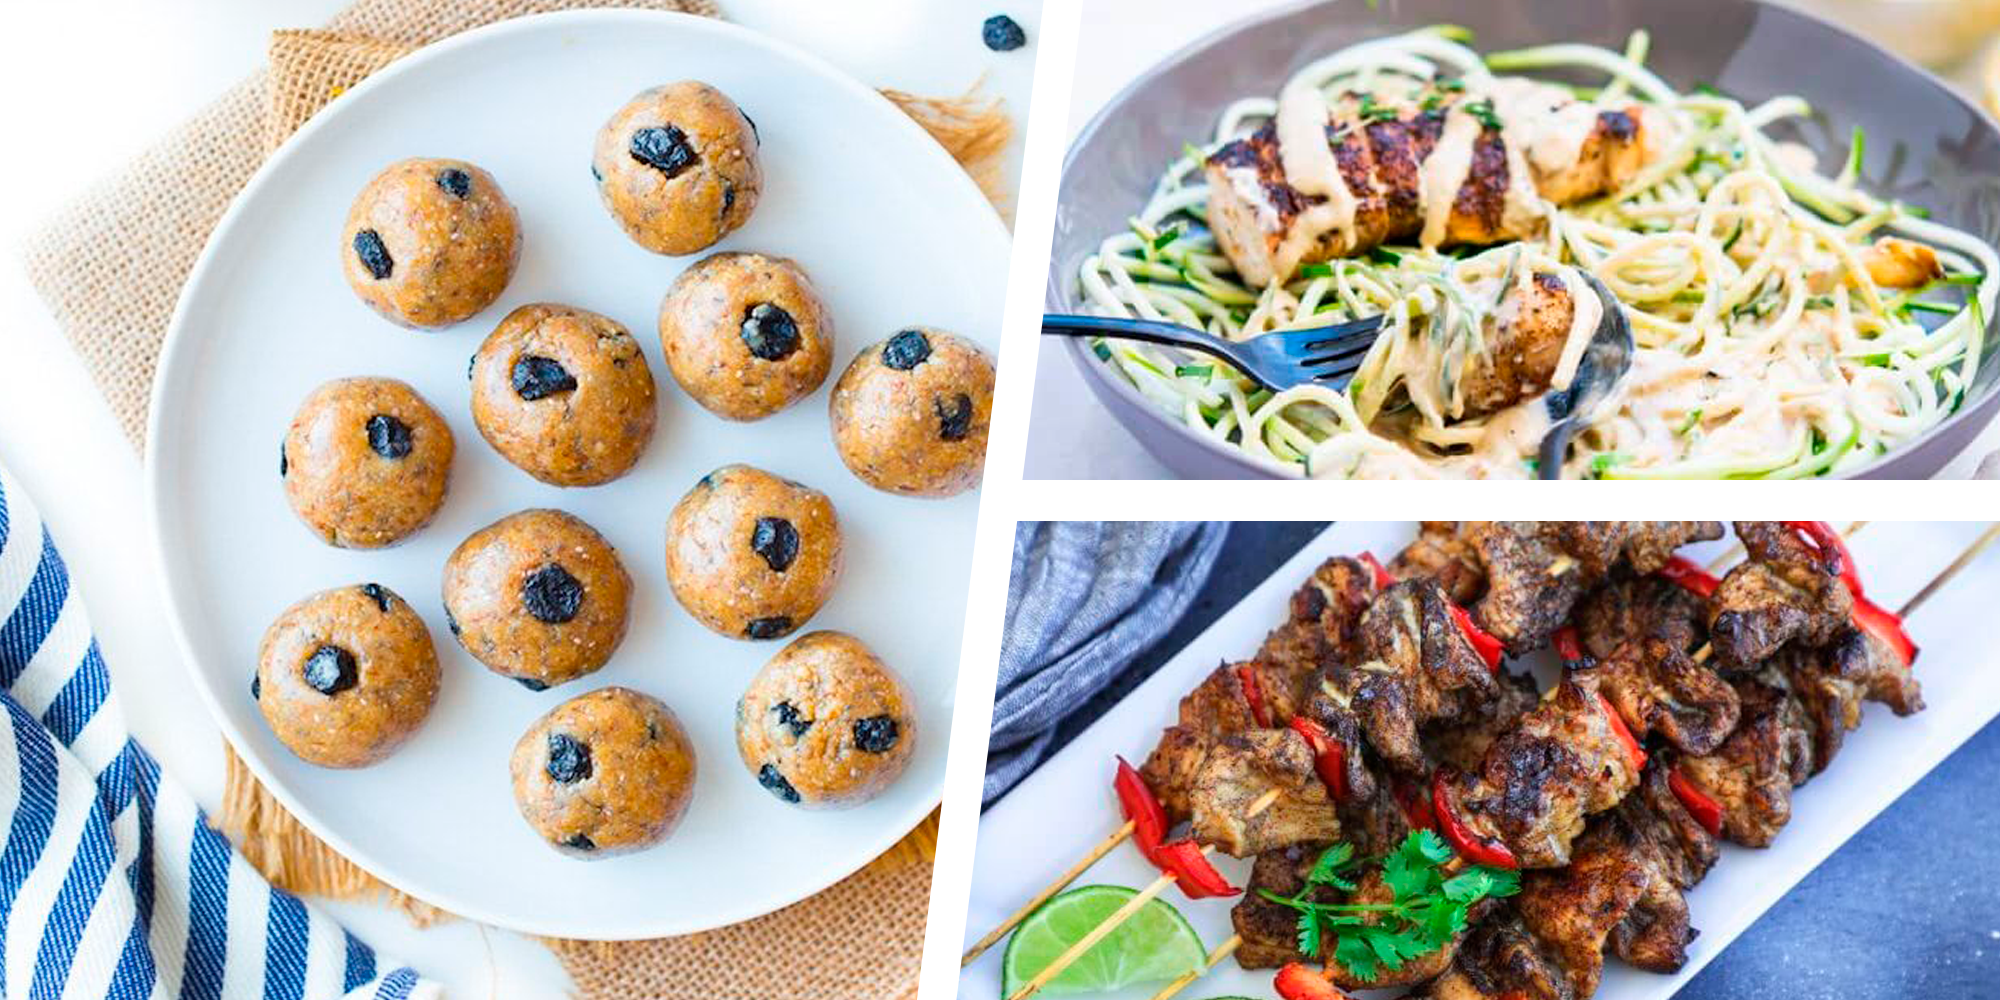 42 Paleo-Friendly Recipes to Help You Satisfy Every Craving